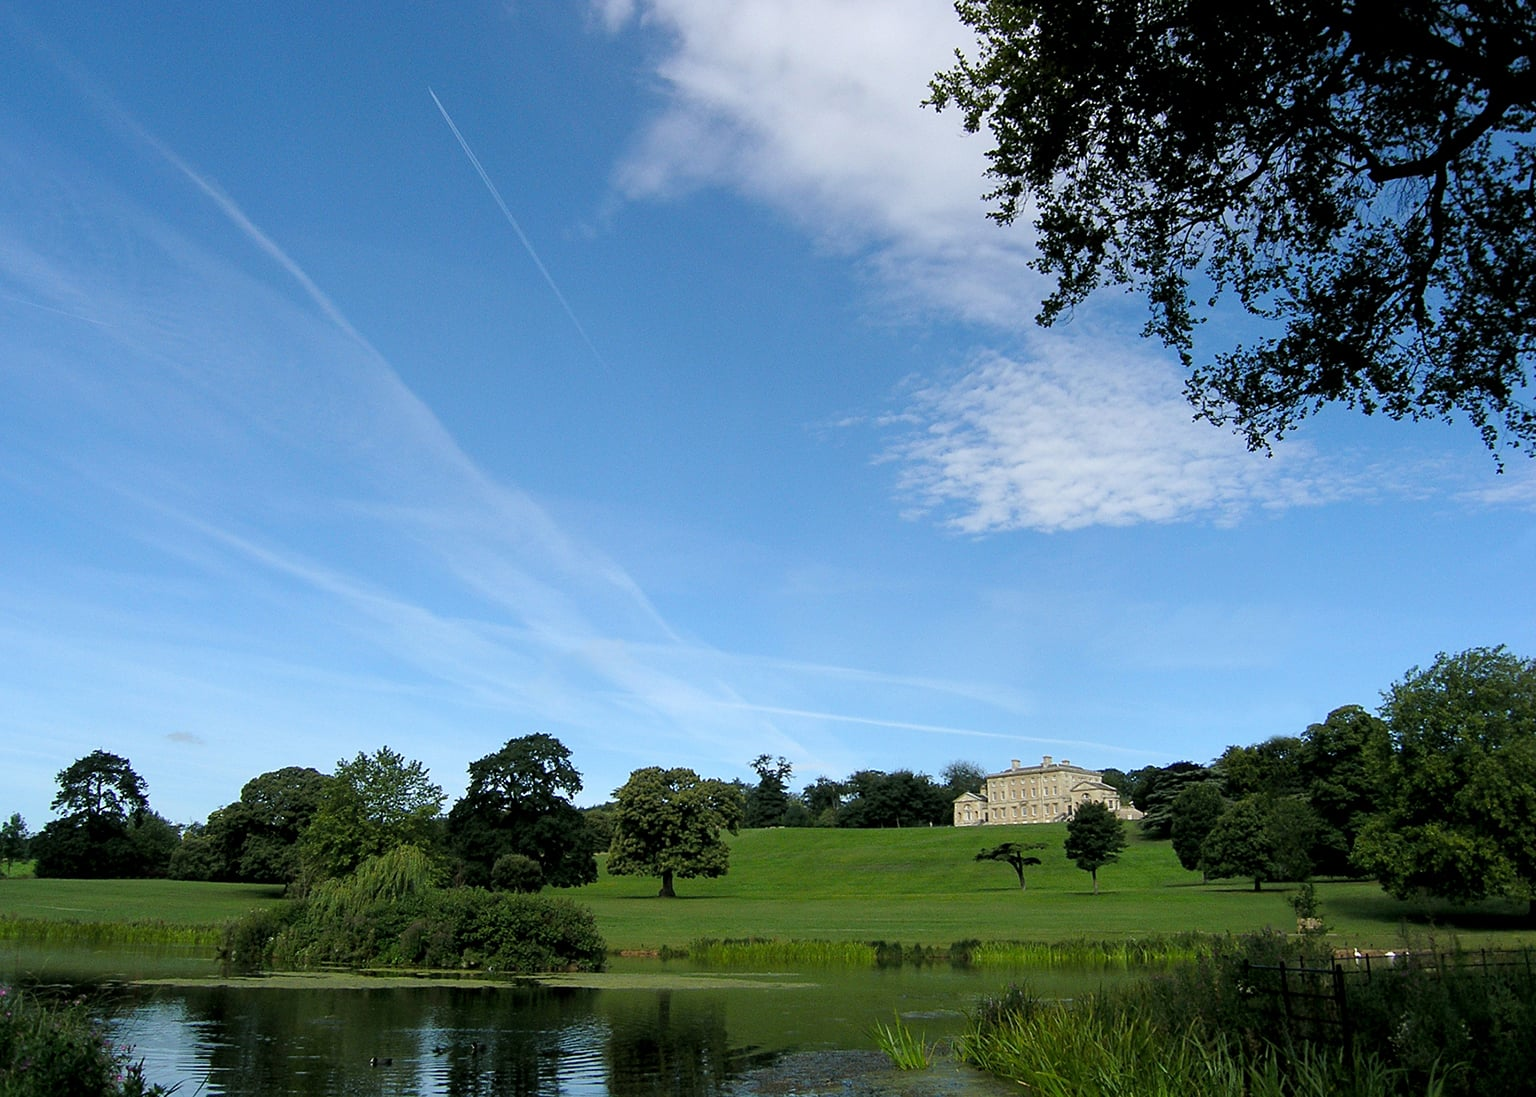 5. Cusworth Hall, Museum and Park, South Yorkshire, Free entry to all -